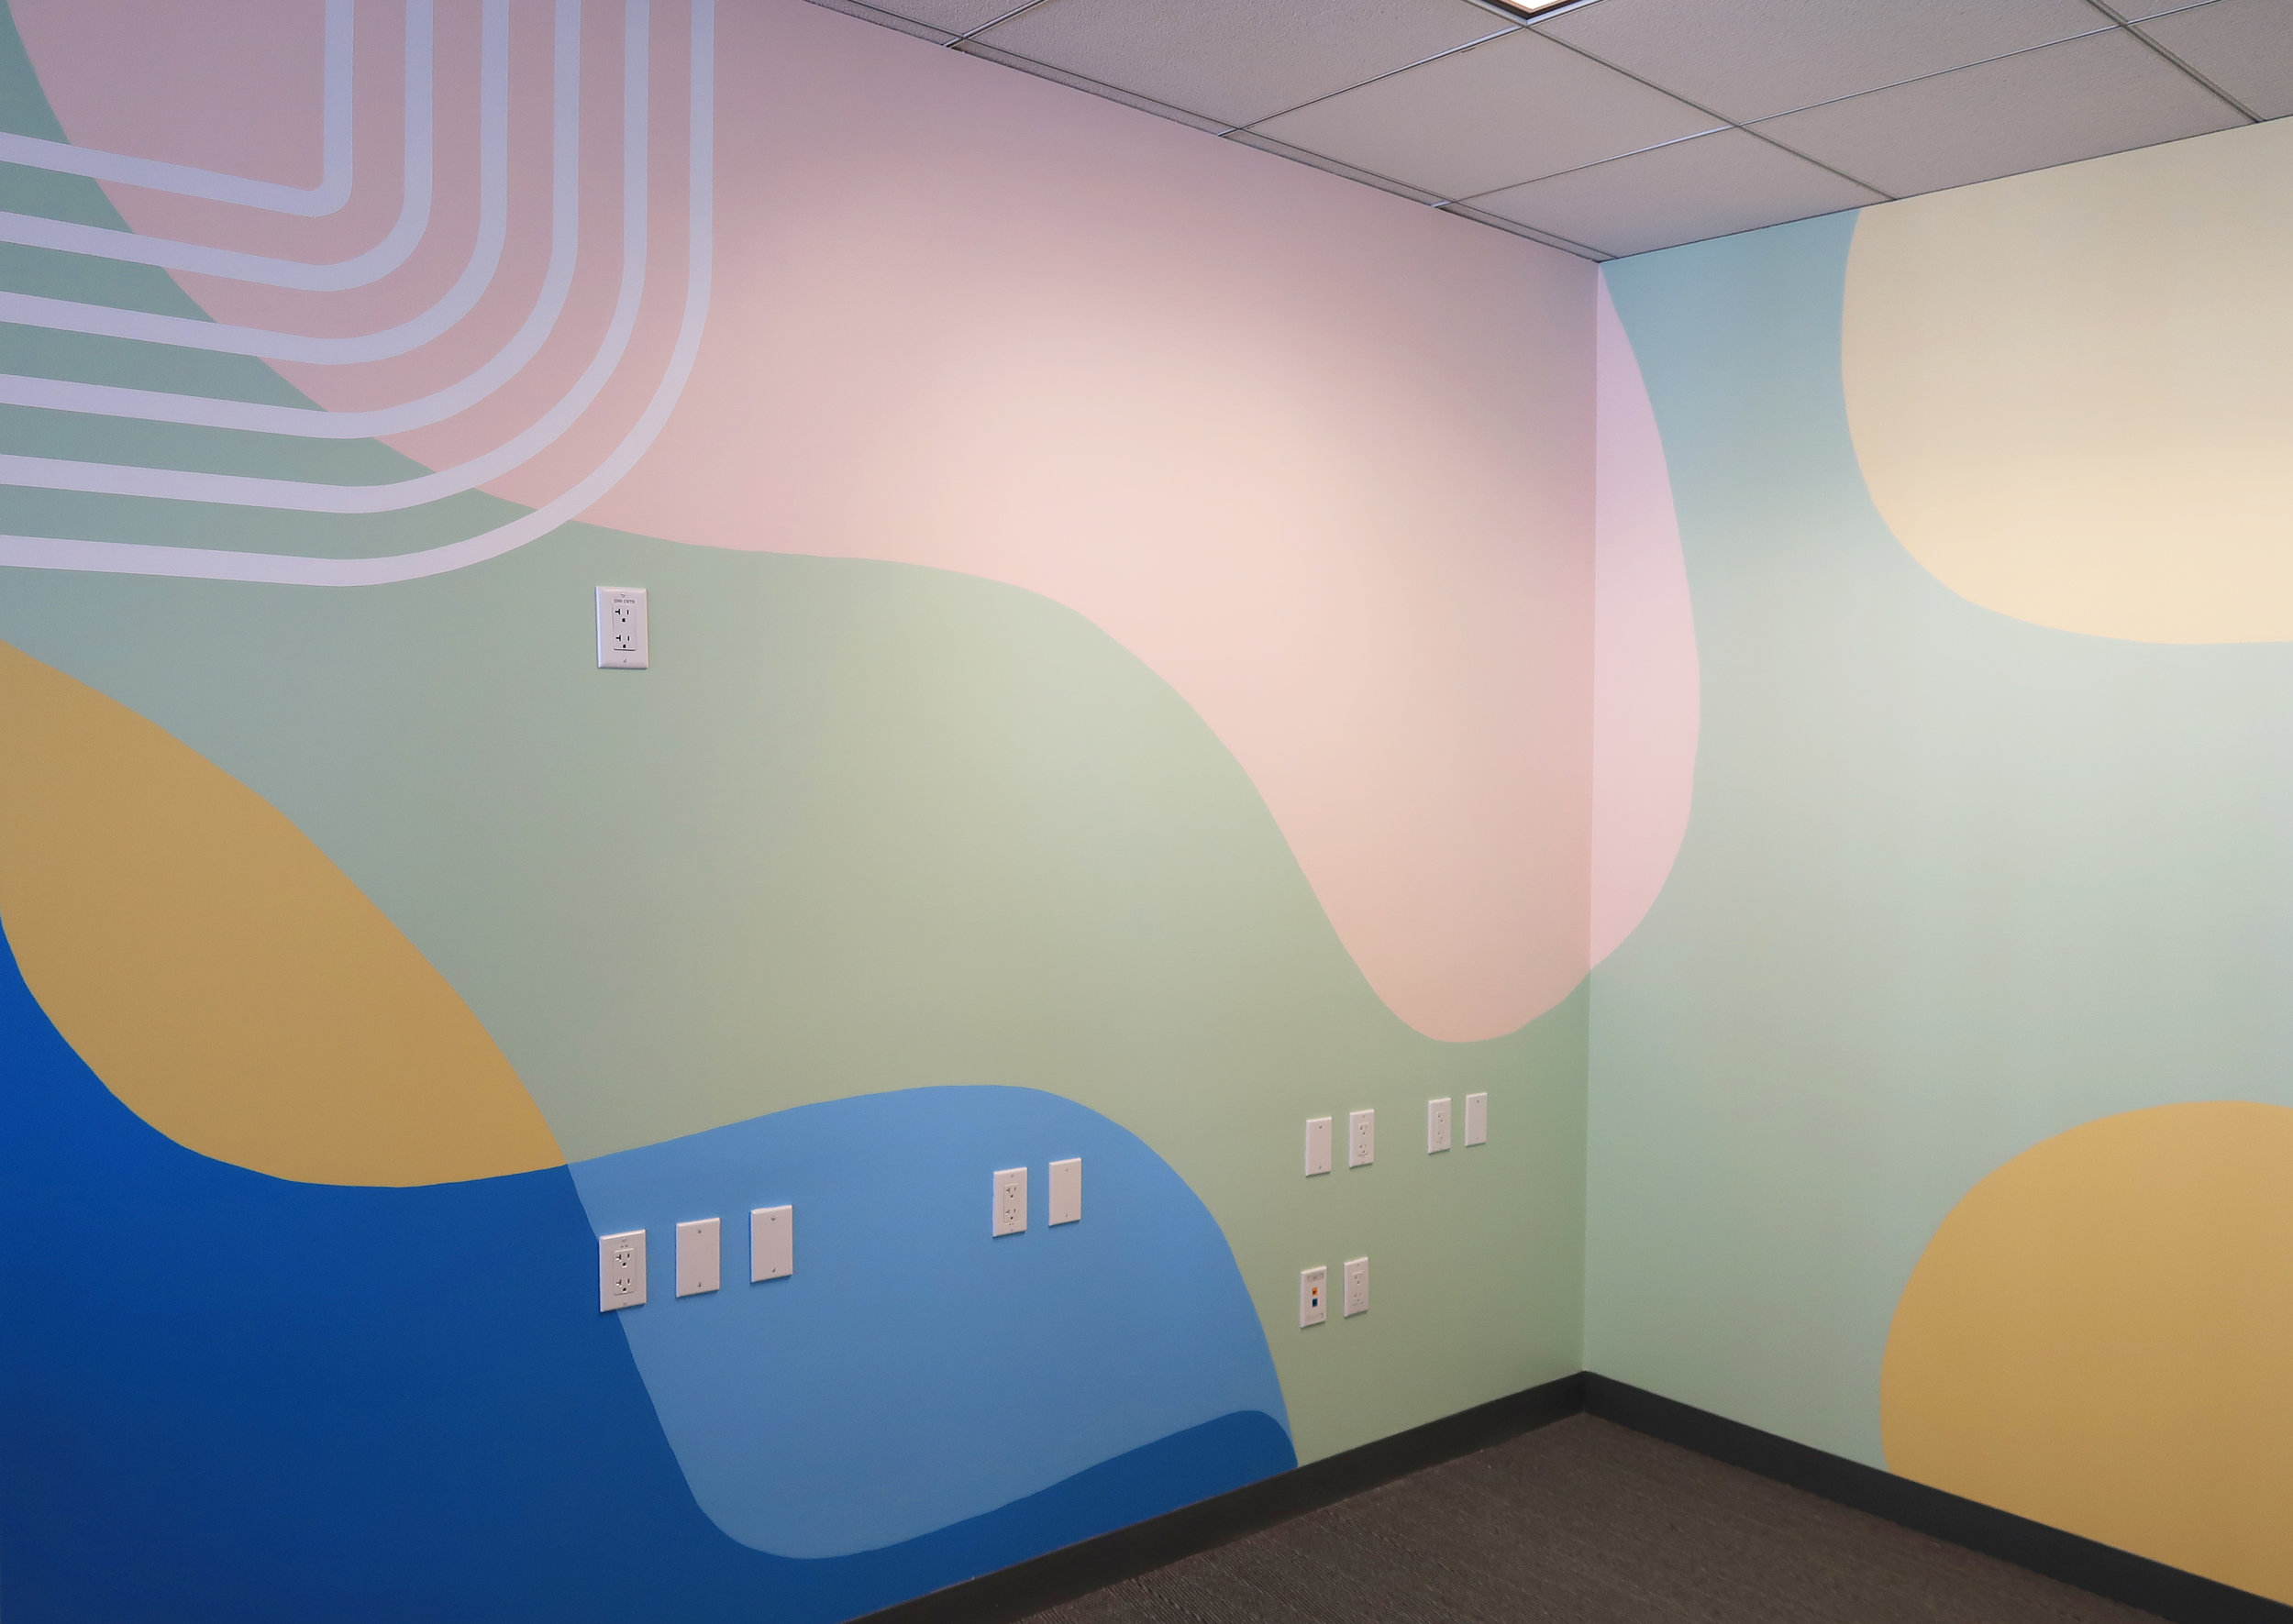 Event-mural-live-painting-san-francisco-segment-wall-and-wall-mural-company_002.jpg